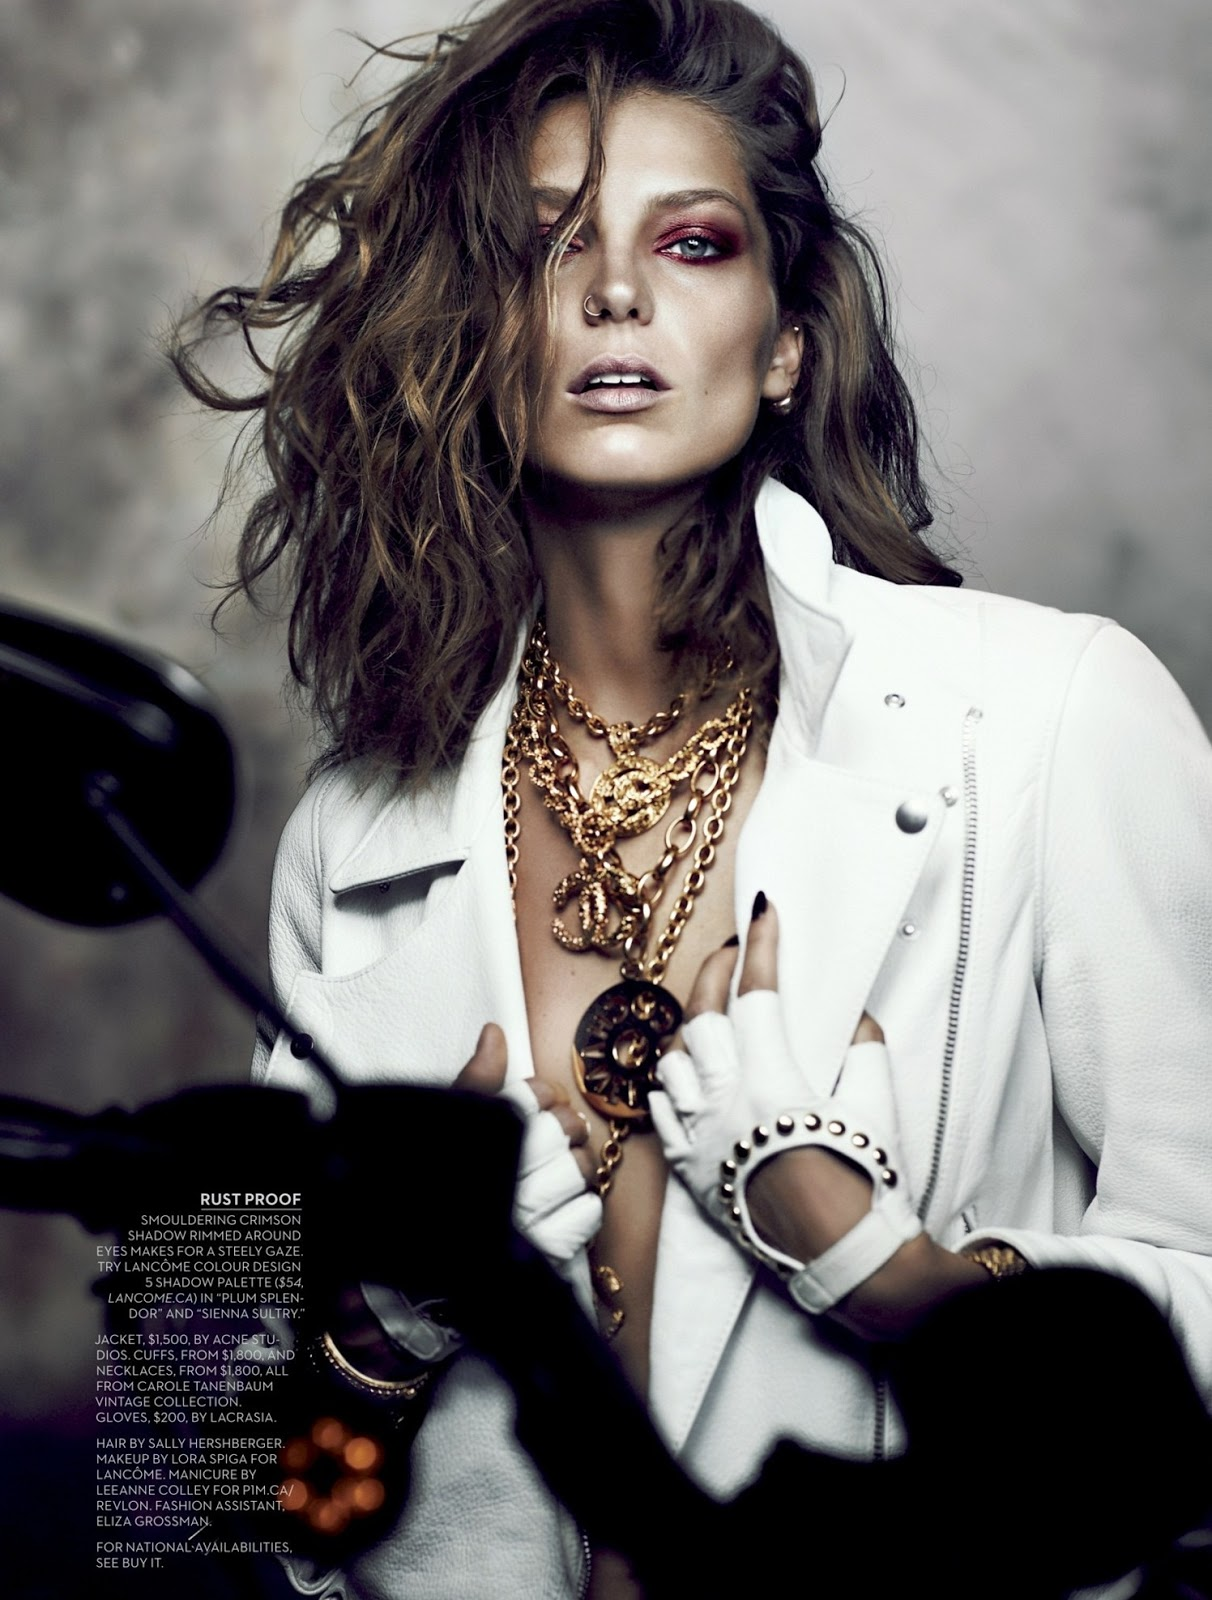 Daria Werbowy By Chris Nicholls Magazine Photoshoot For Fashion Magazine October 2013 Magazine